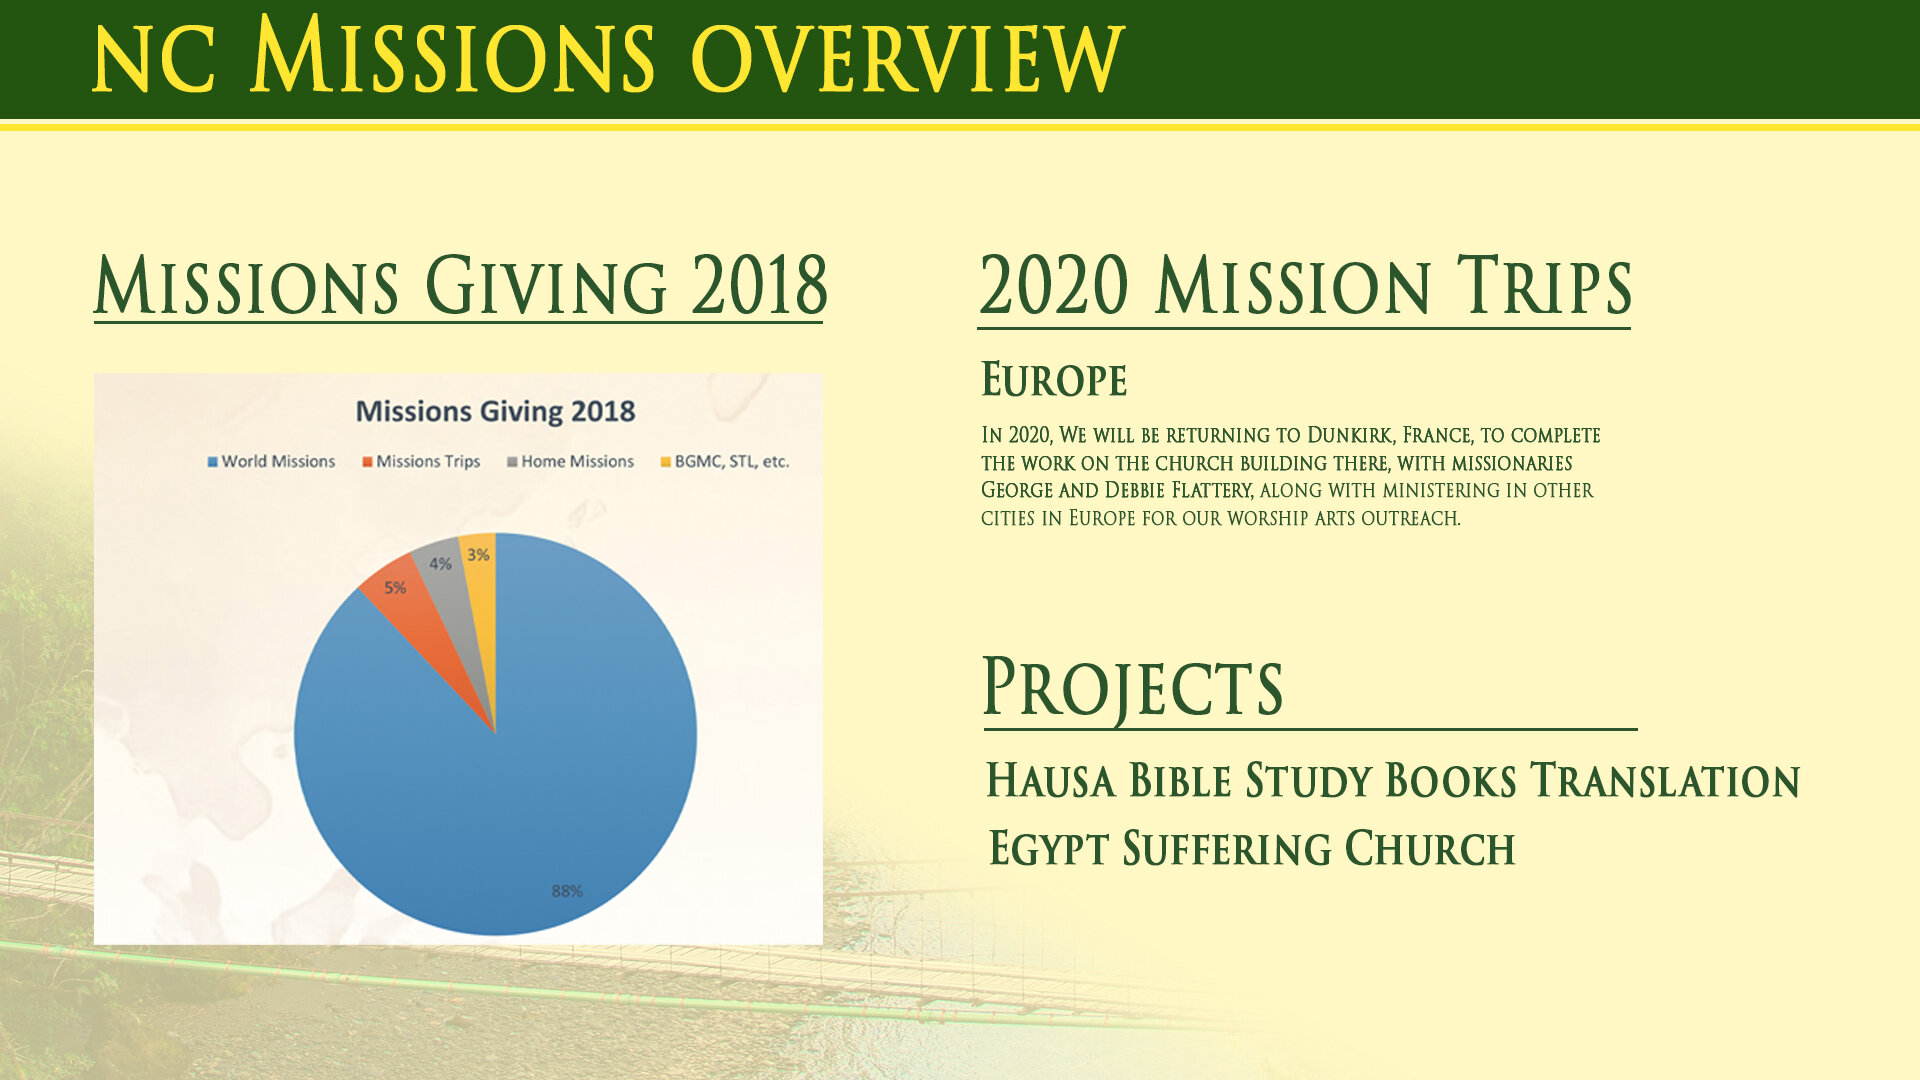 NC Missions Overview.jpg